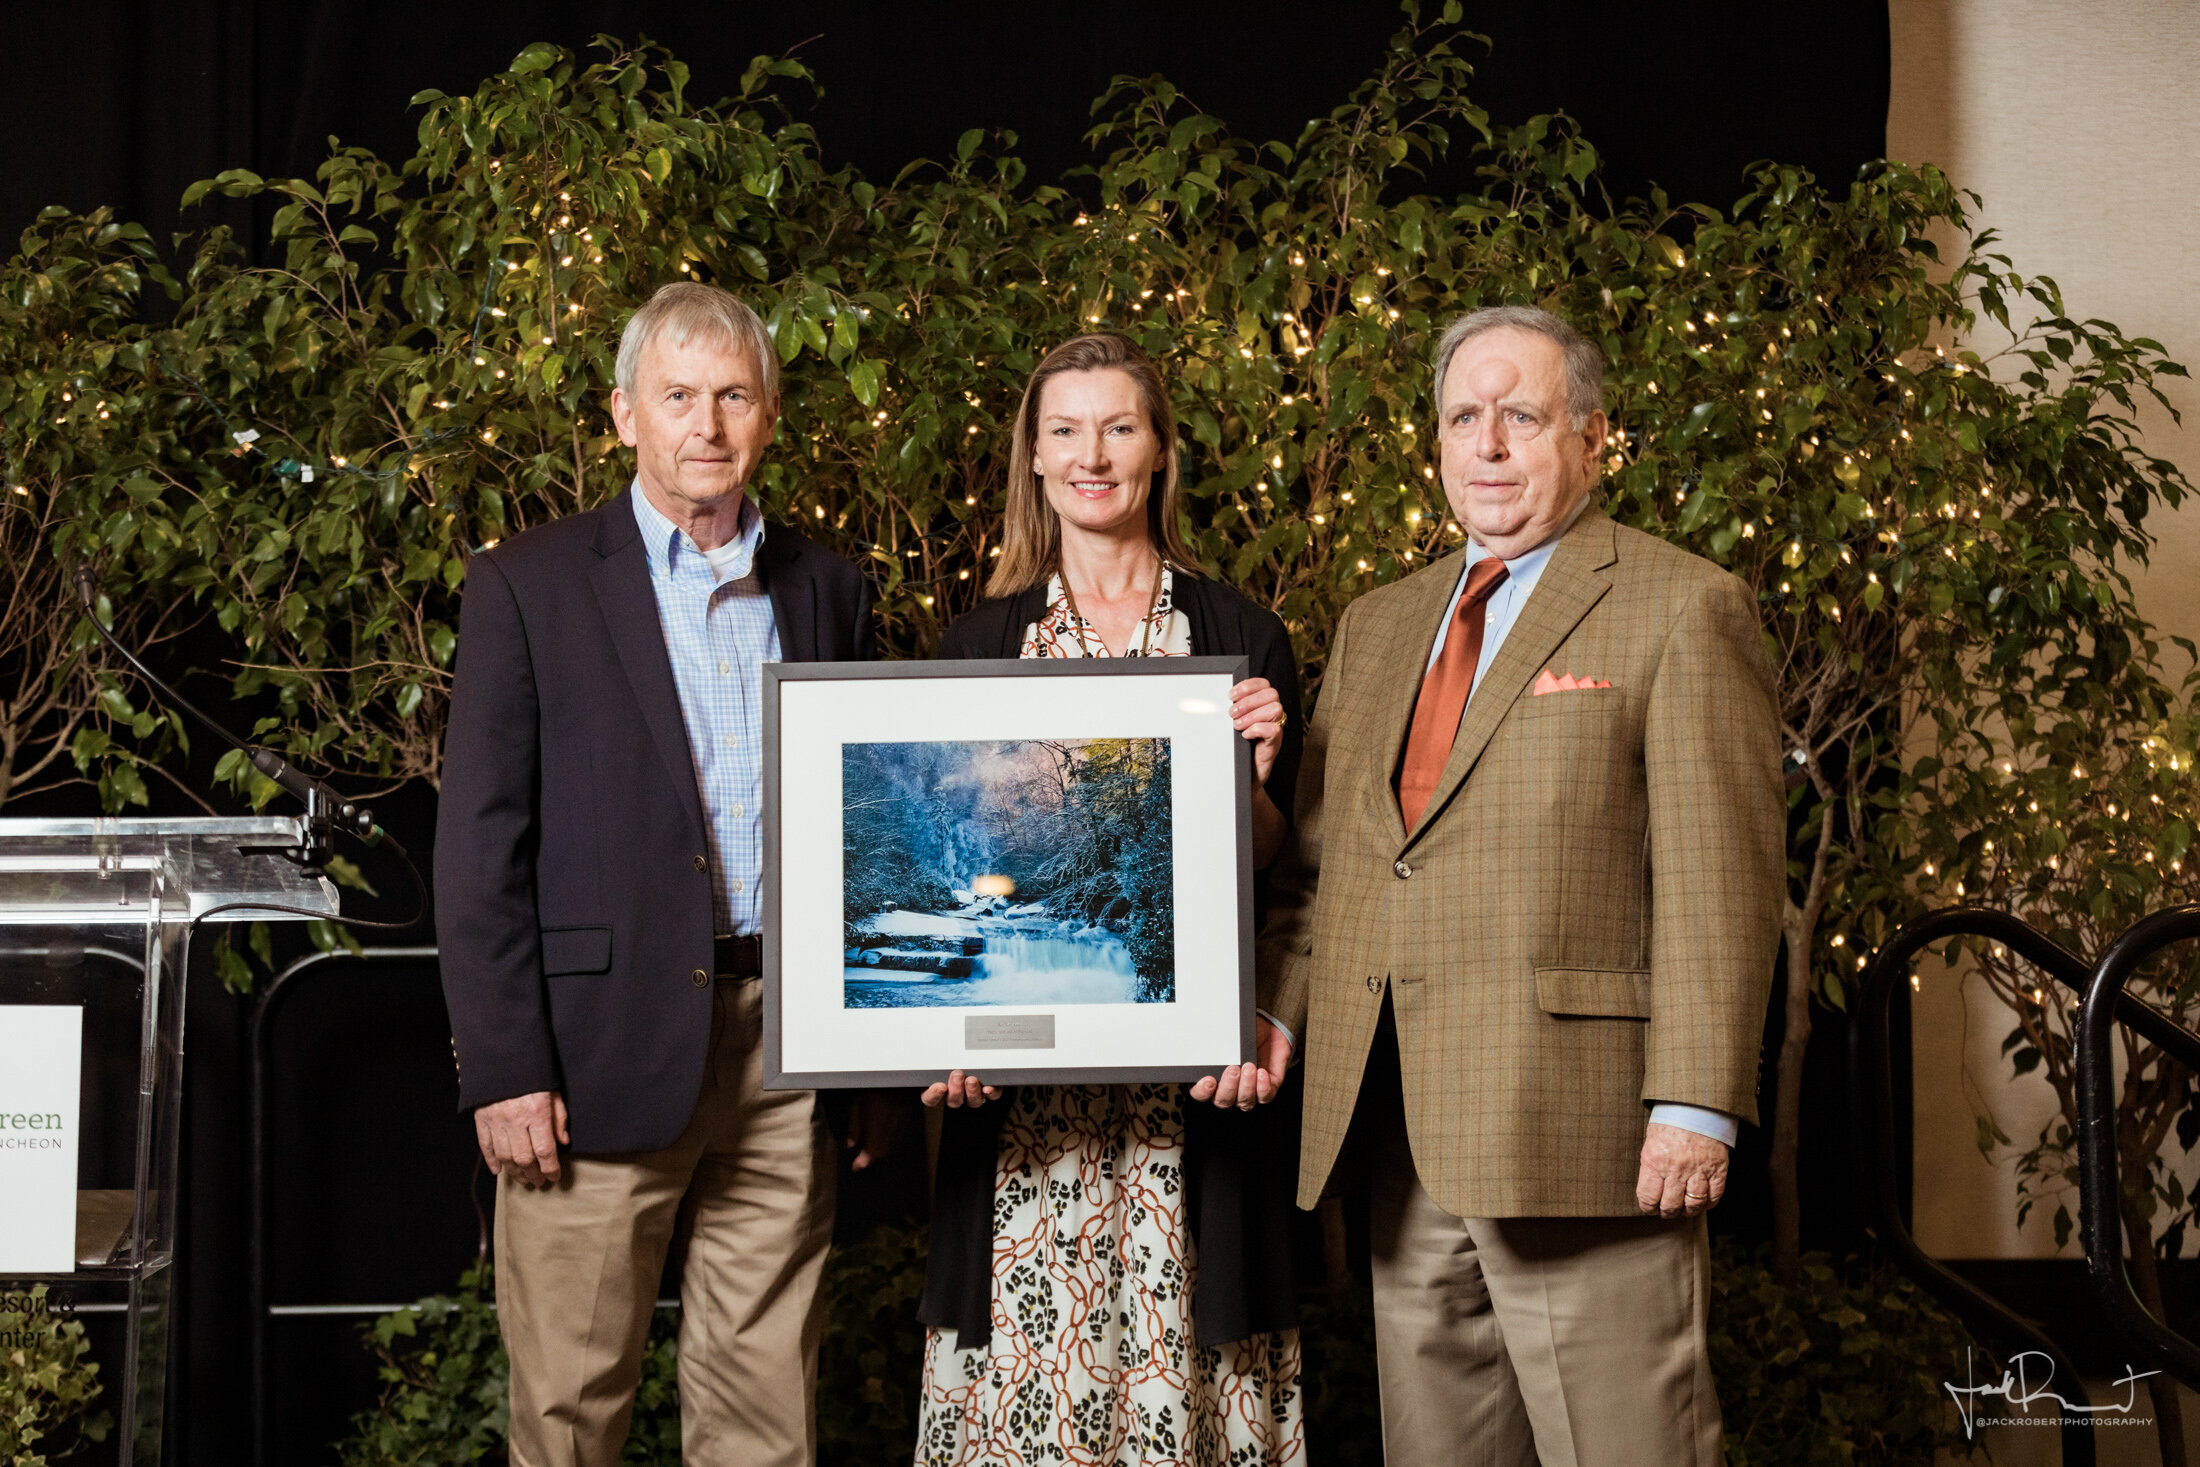 Tom Kester,  Andrea Cooper, E. ERWIN MADDREY II  Event Photography - Upstate Forever - Forever Green Luncheon - Embassy Suites, Greenville, South Carolina - Jack Robert Photography